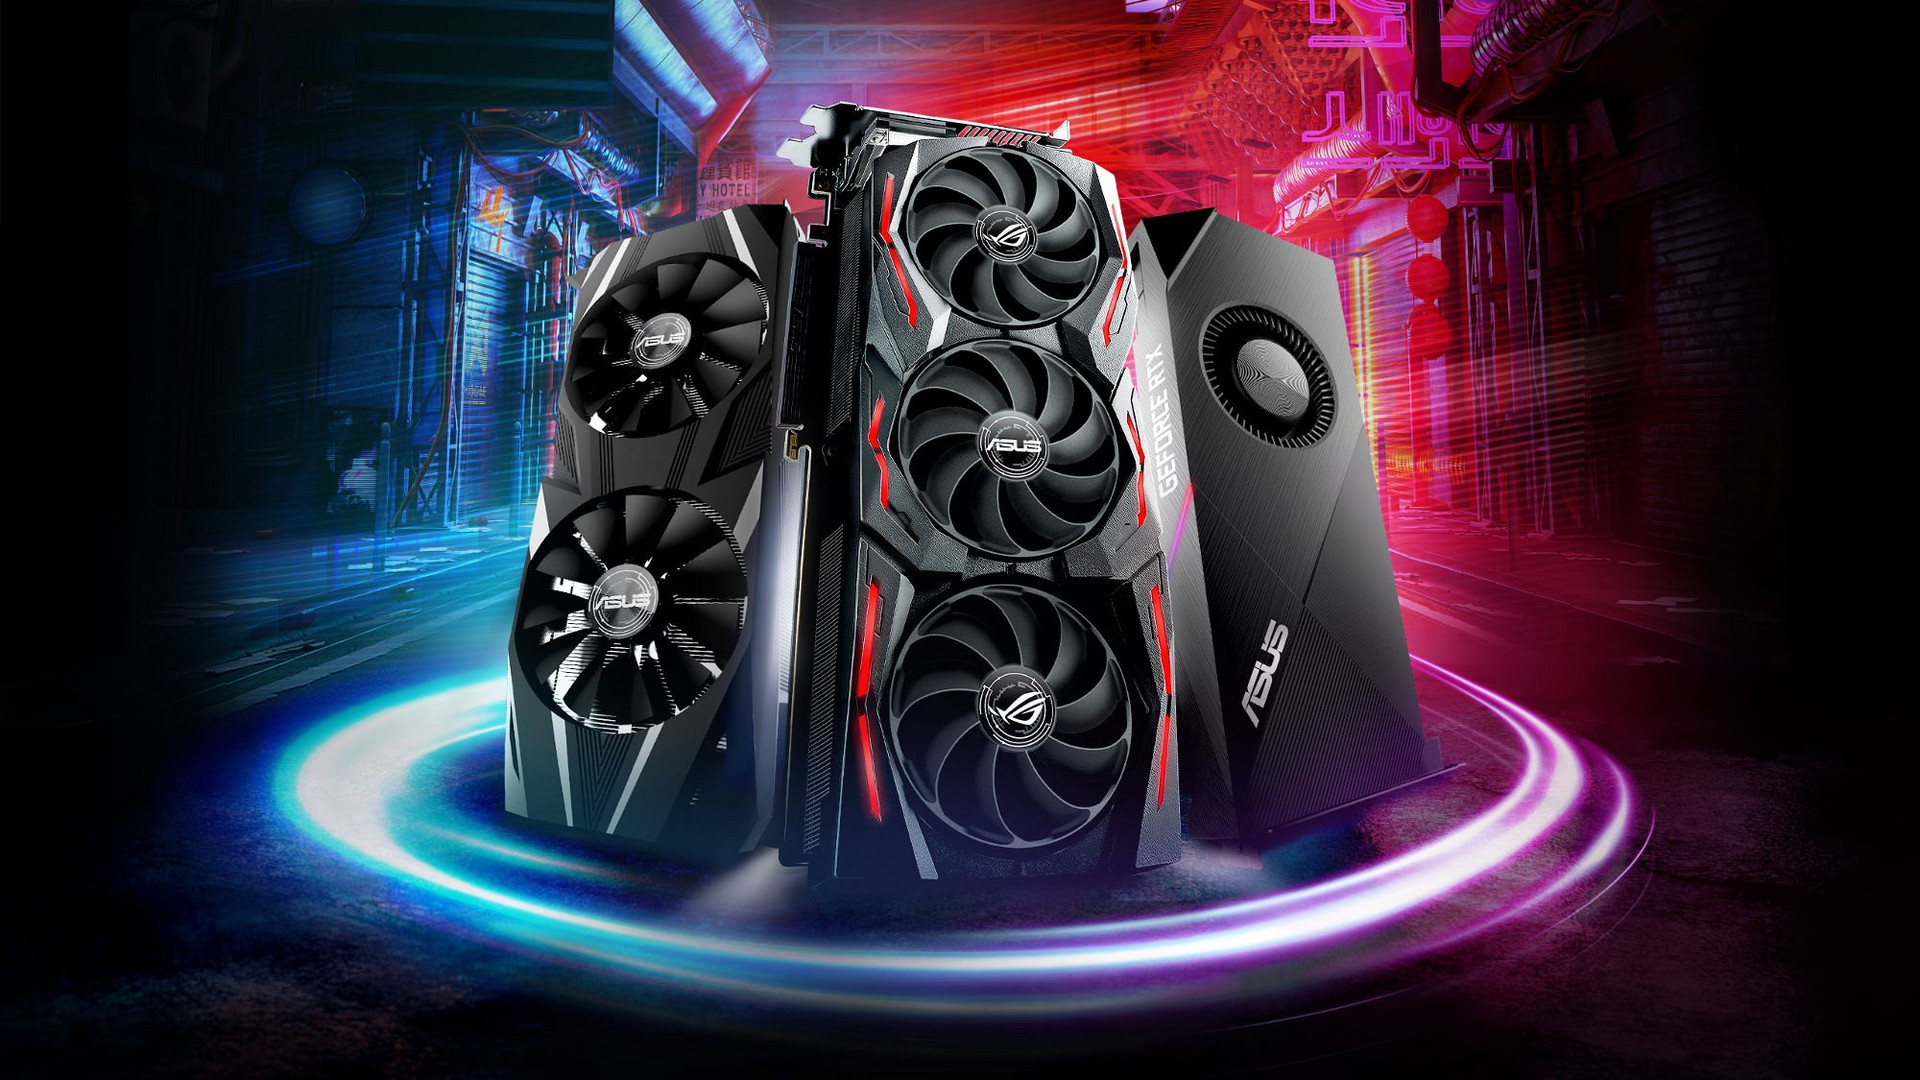 Asus will have three trims of the GeForce RTX 2070 coming next month